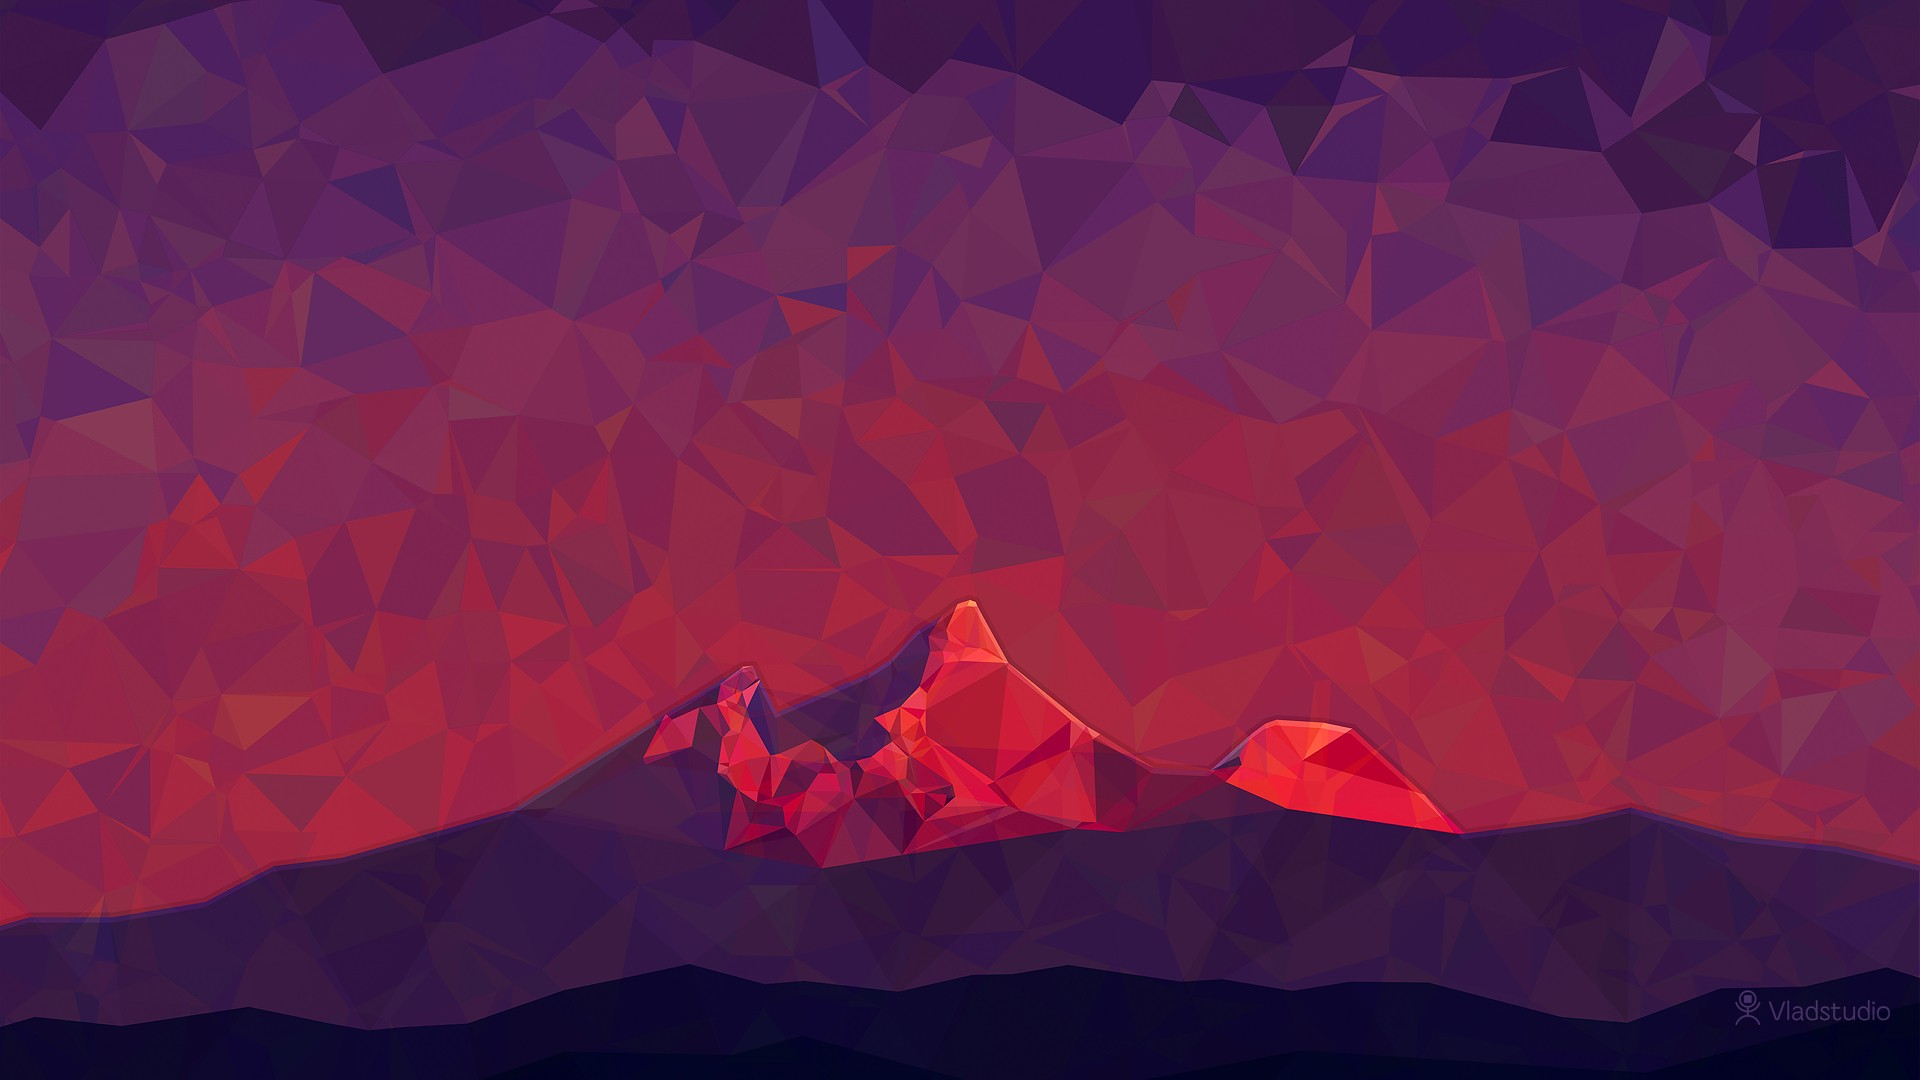 General 1920x1080 digital art low poly minimalism 2D triangle simple nature mountains Vladstudio hills